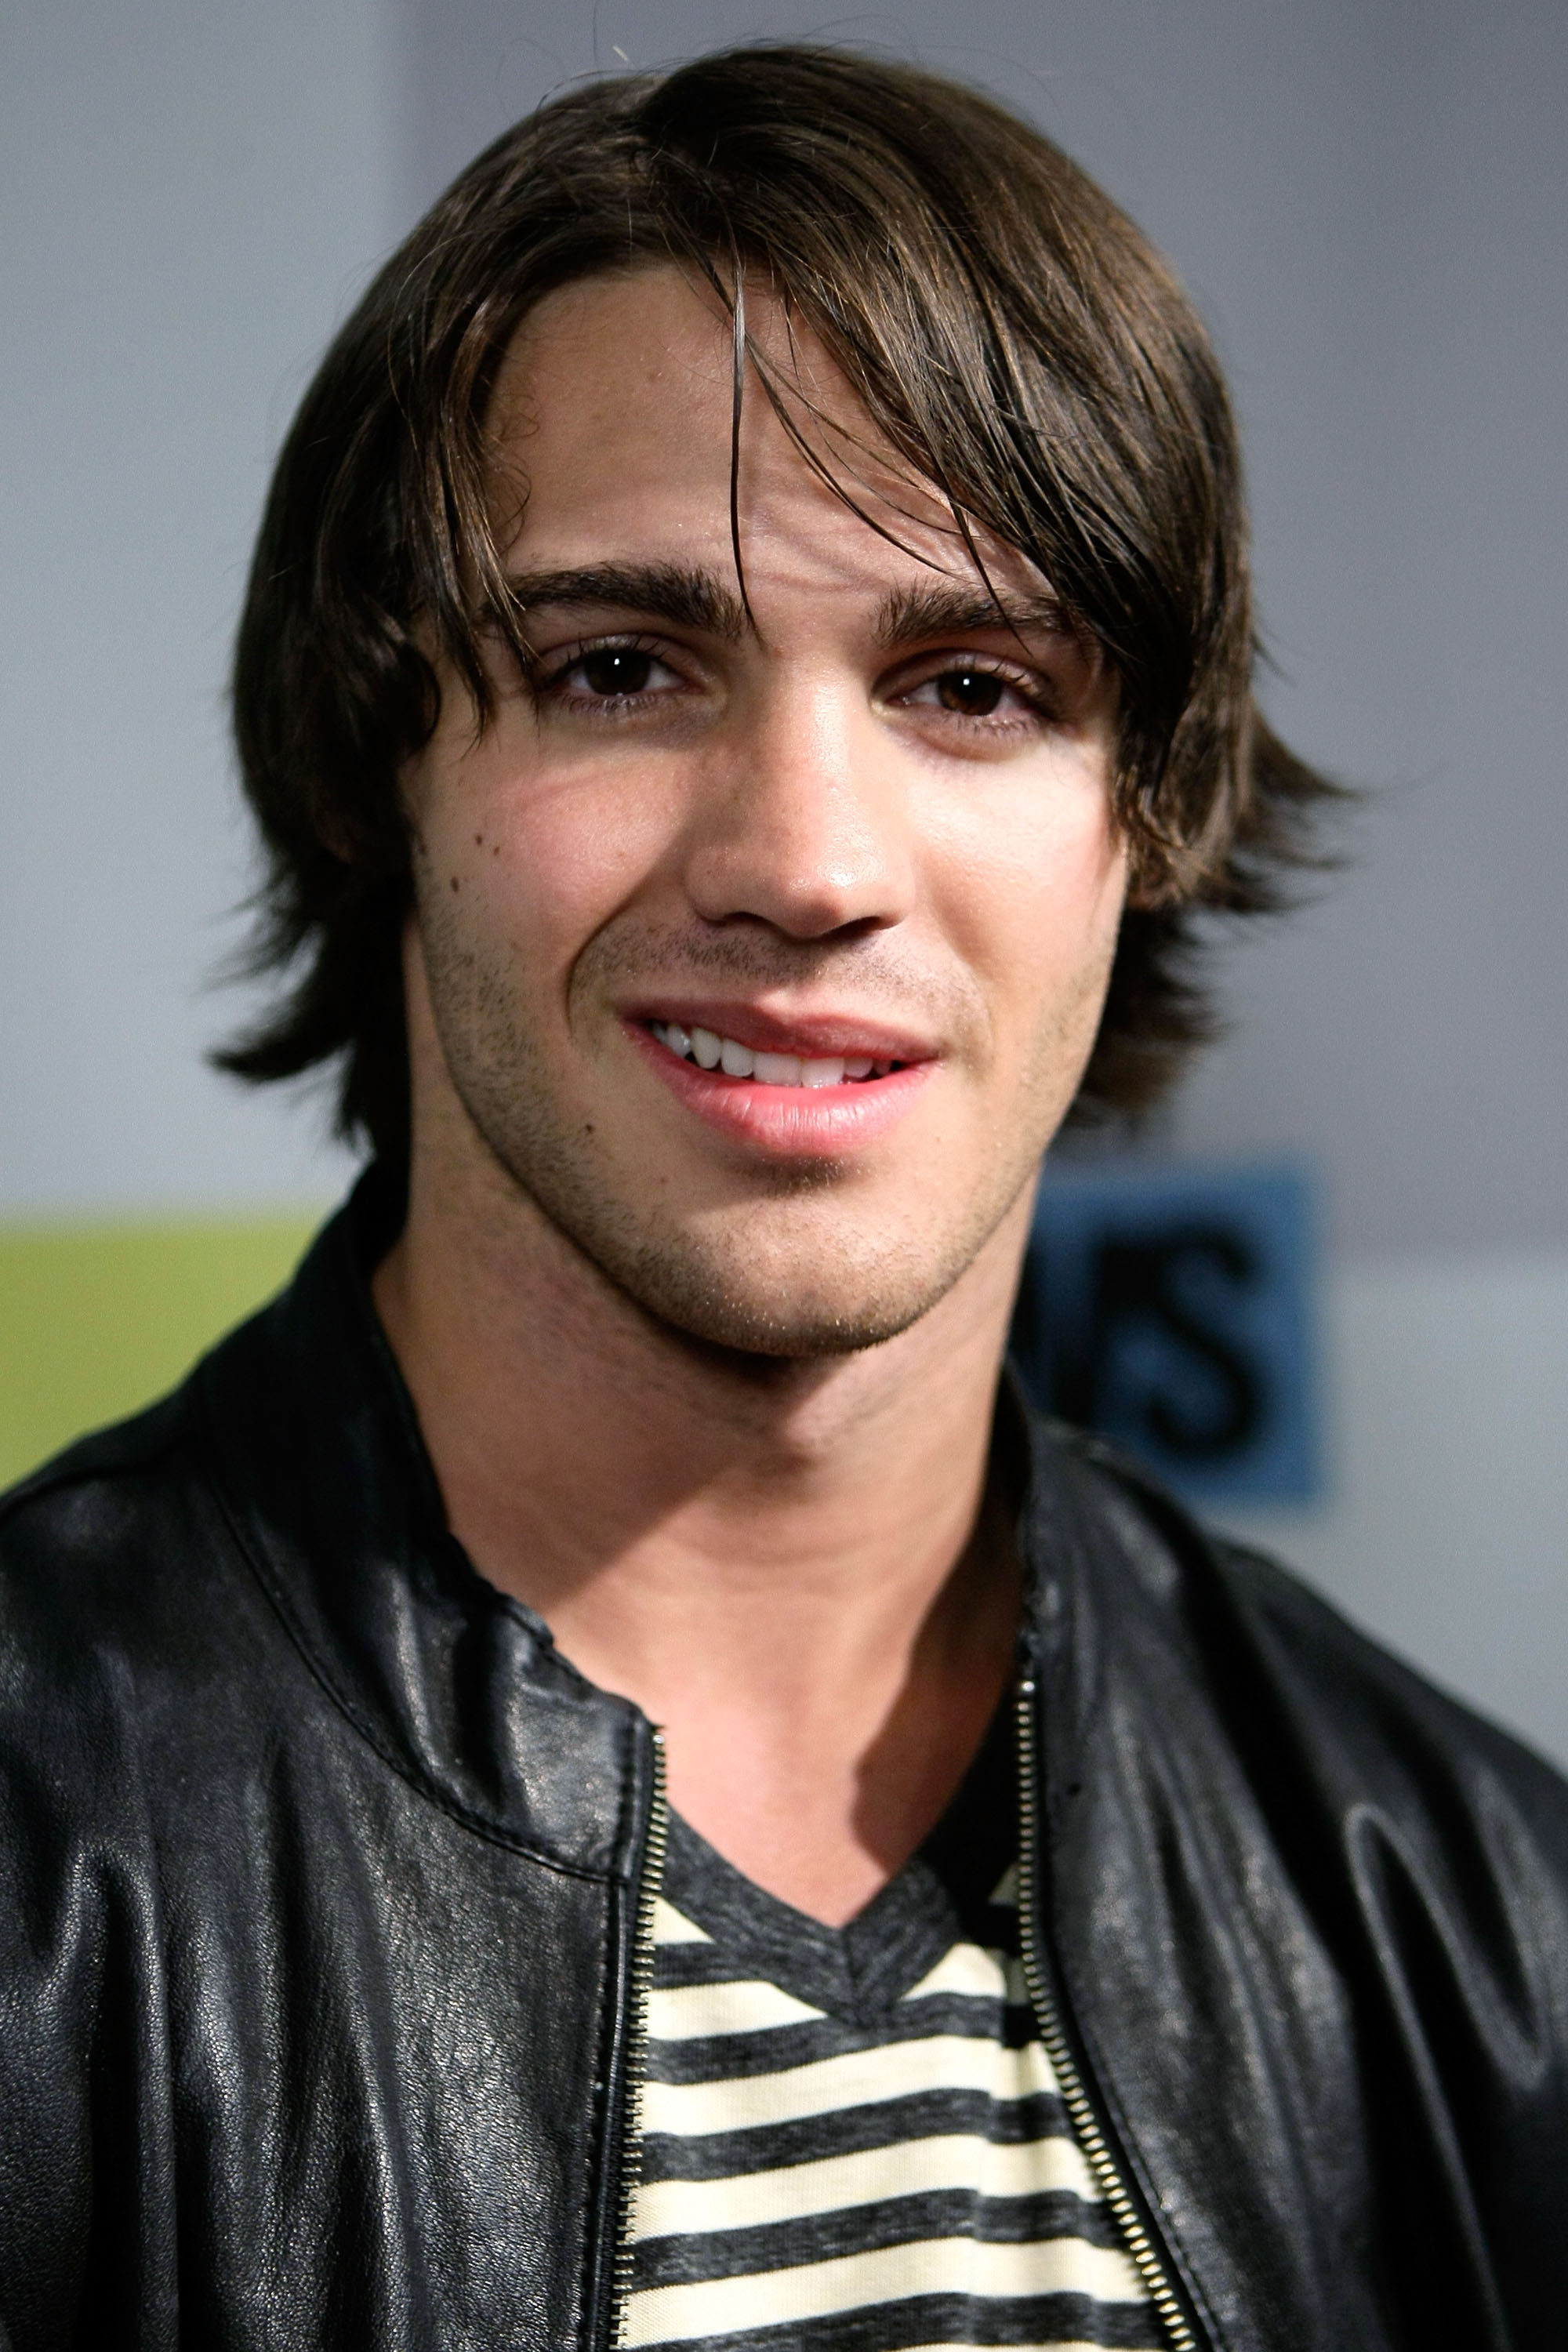 Image Source: Getty Images/A photo of Steven McQueen